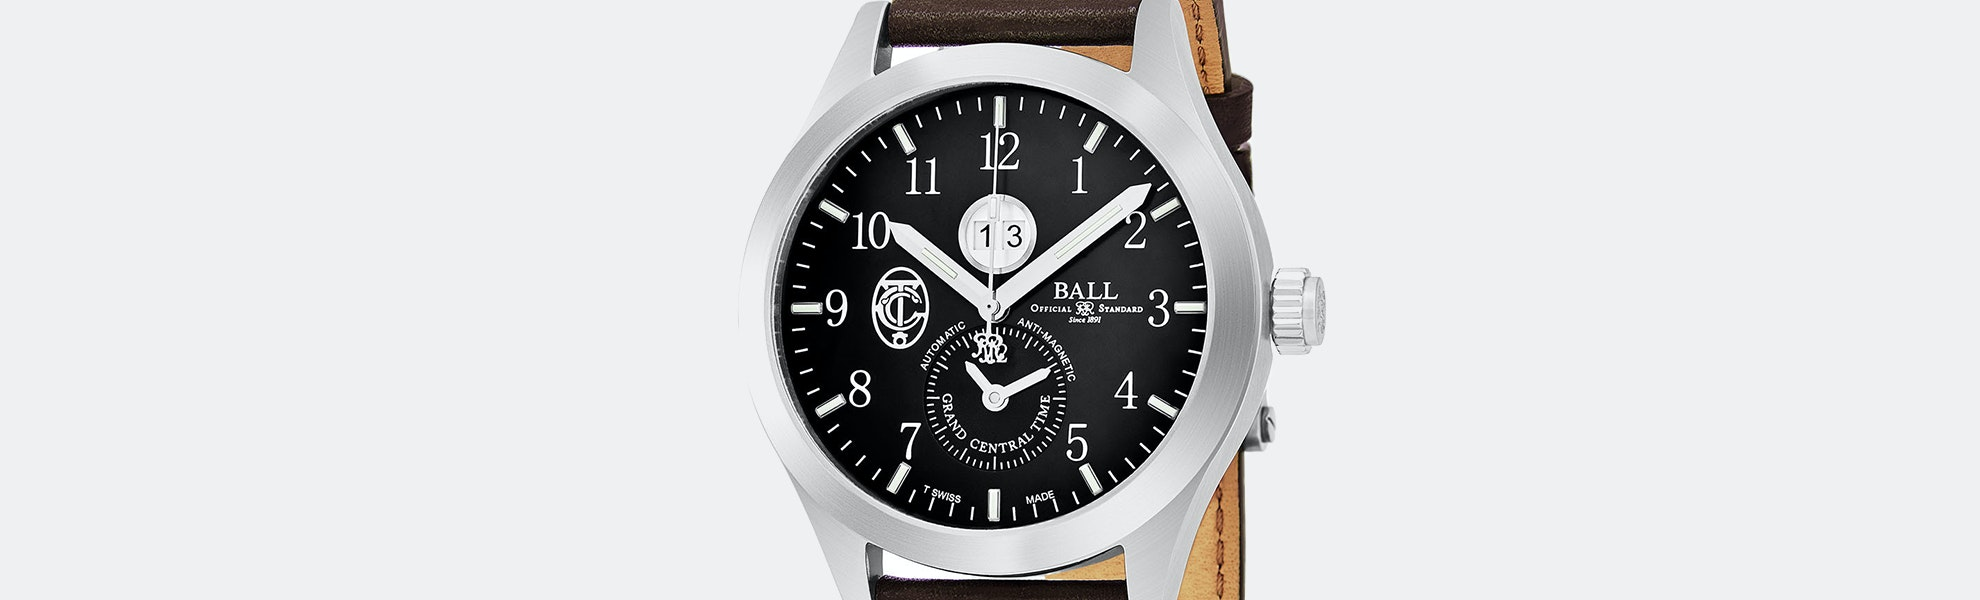 Ball Engineer II GCT Automatic Watch